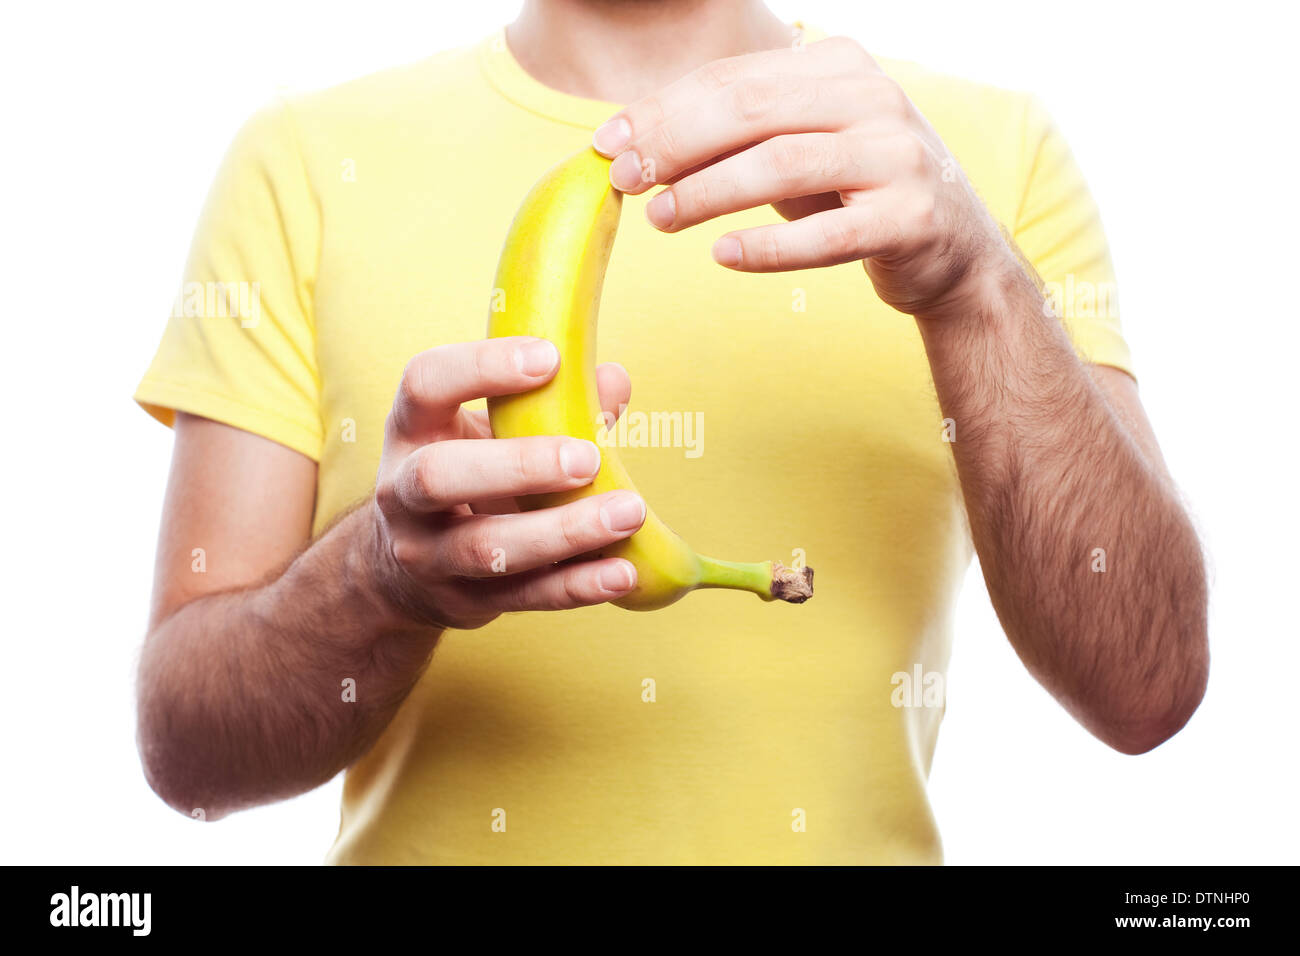 Guy holding et l'ouverture de banane jaune sur fond blanc. studio shot. Photo Stock